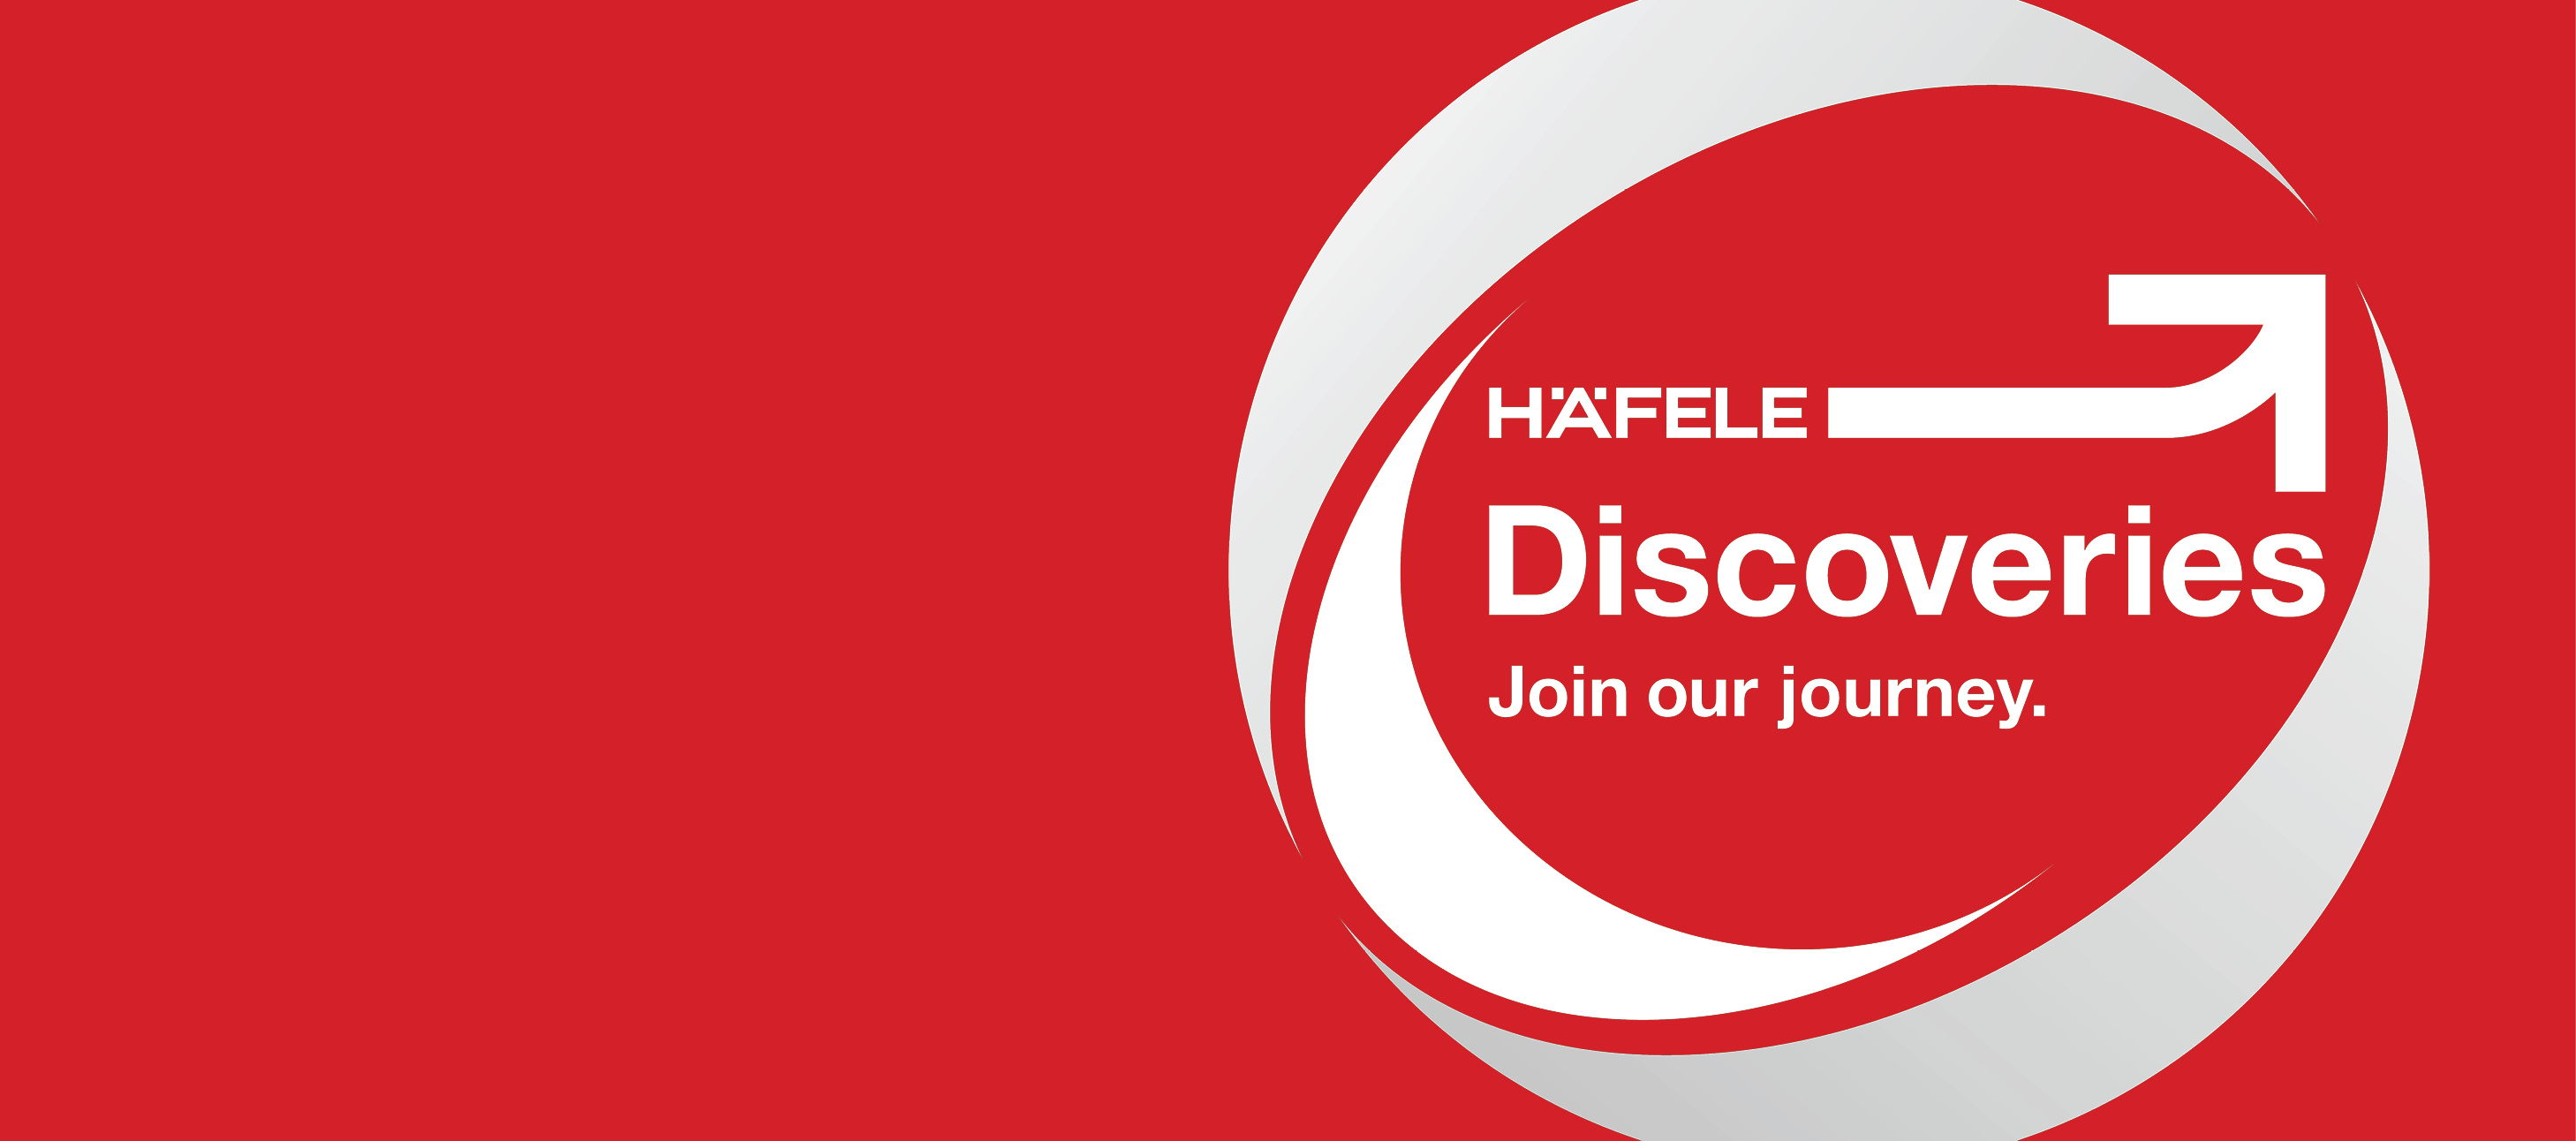 Experience and join Häfele Discoveries.